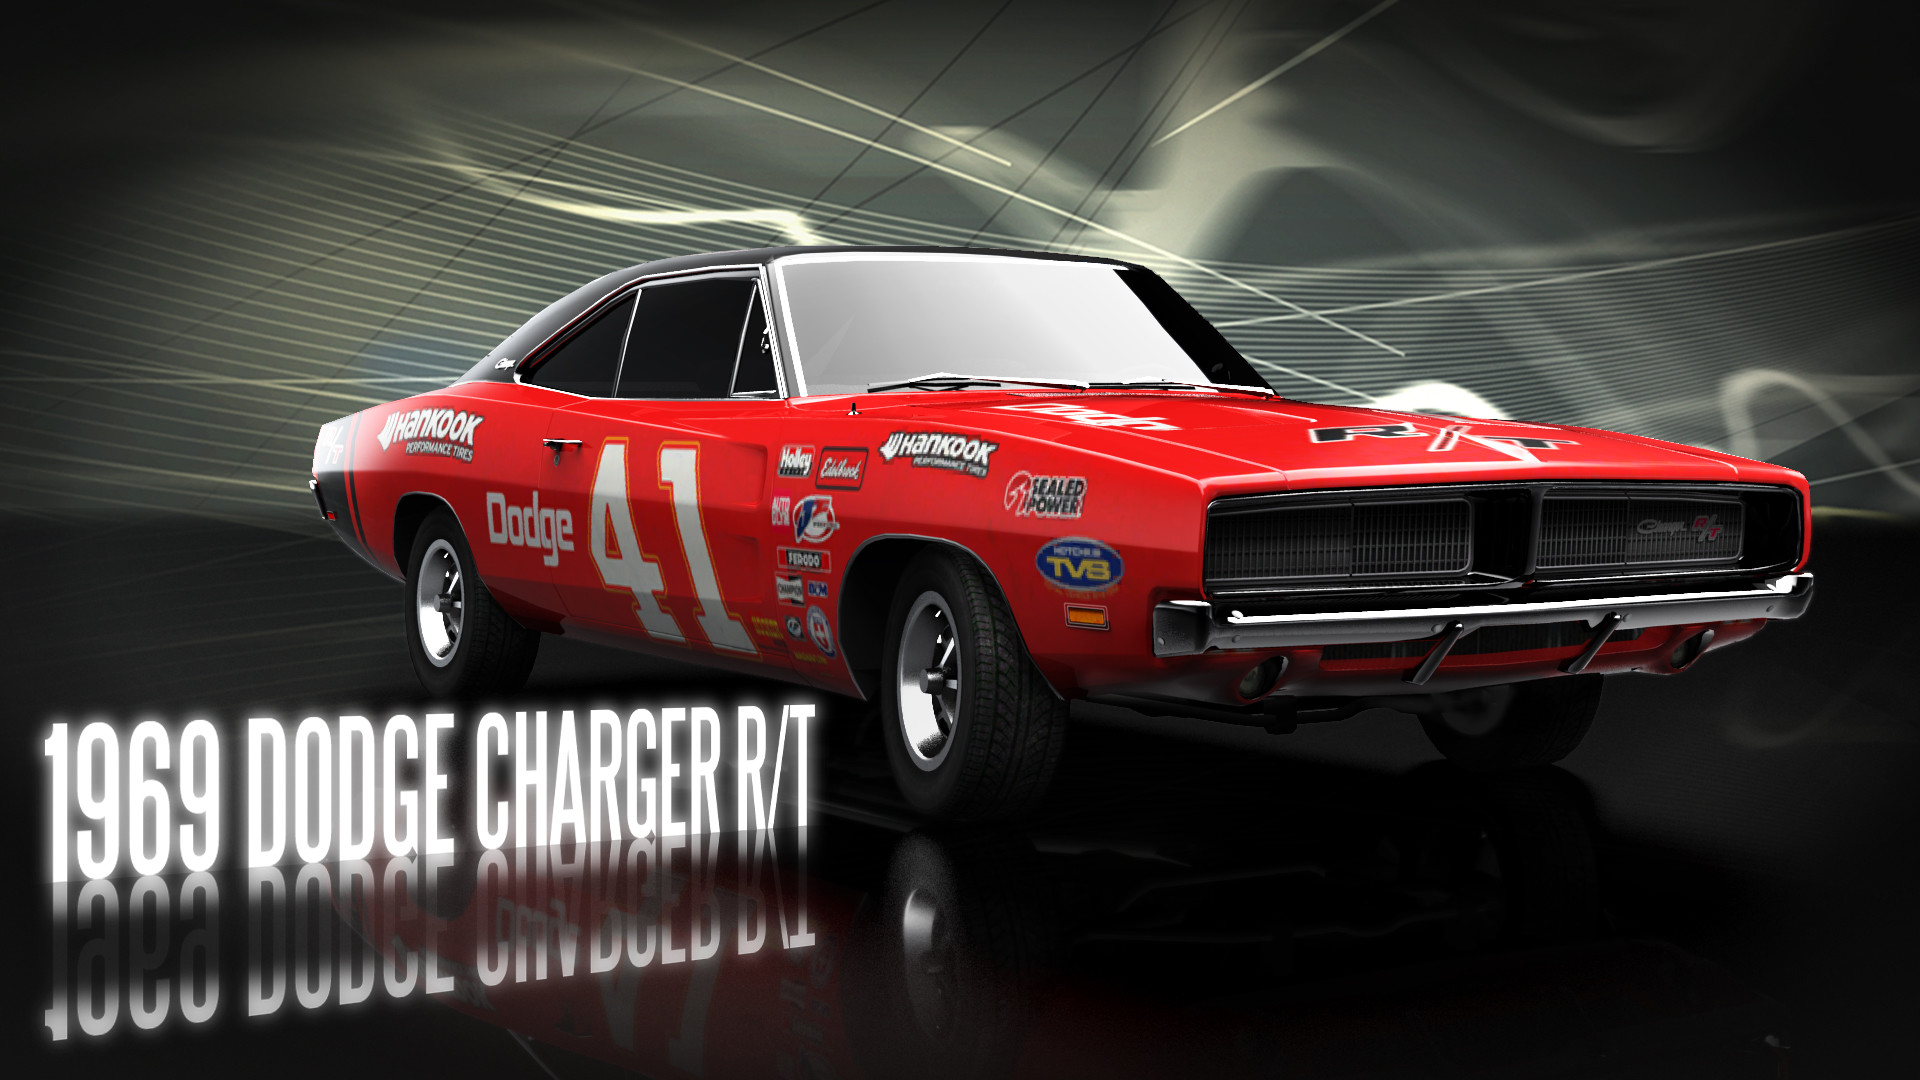 Dodge Charger Rt Wallpaper